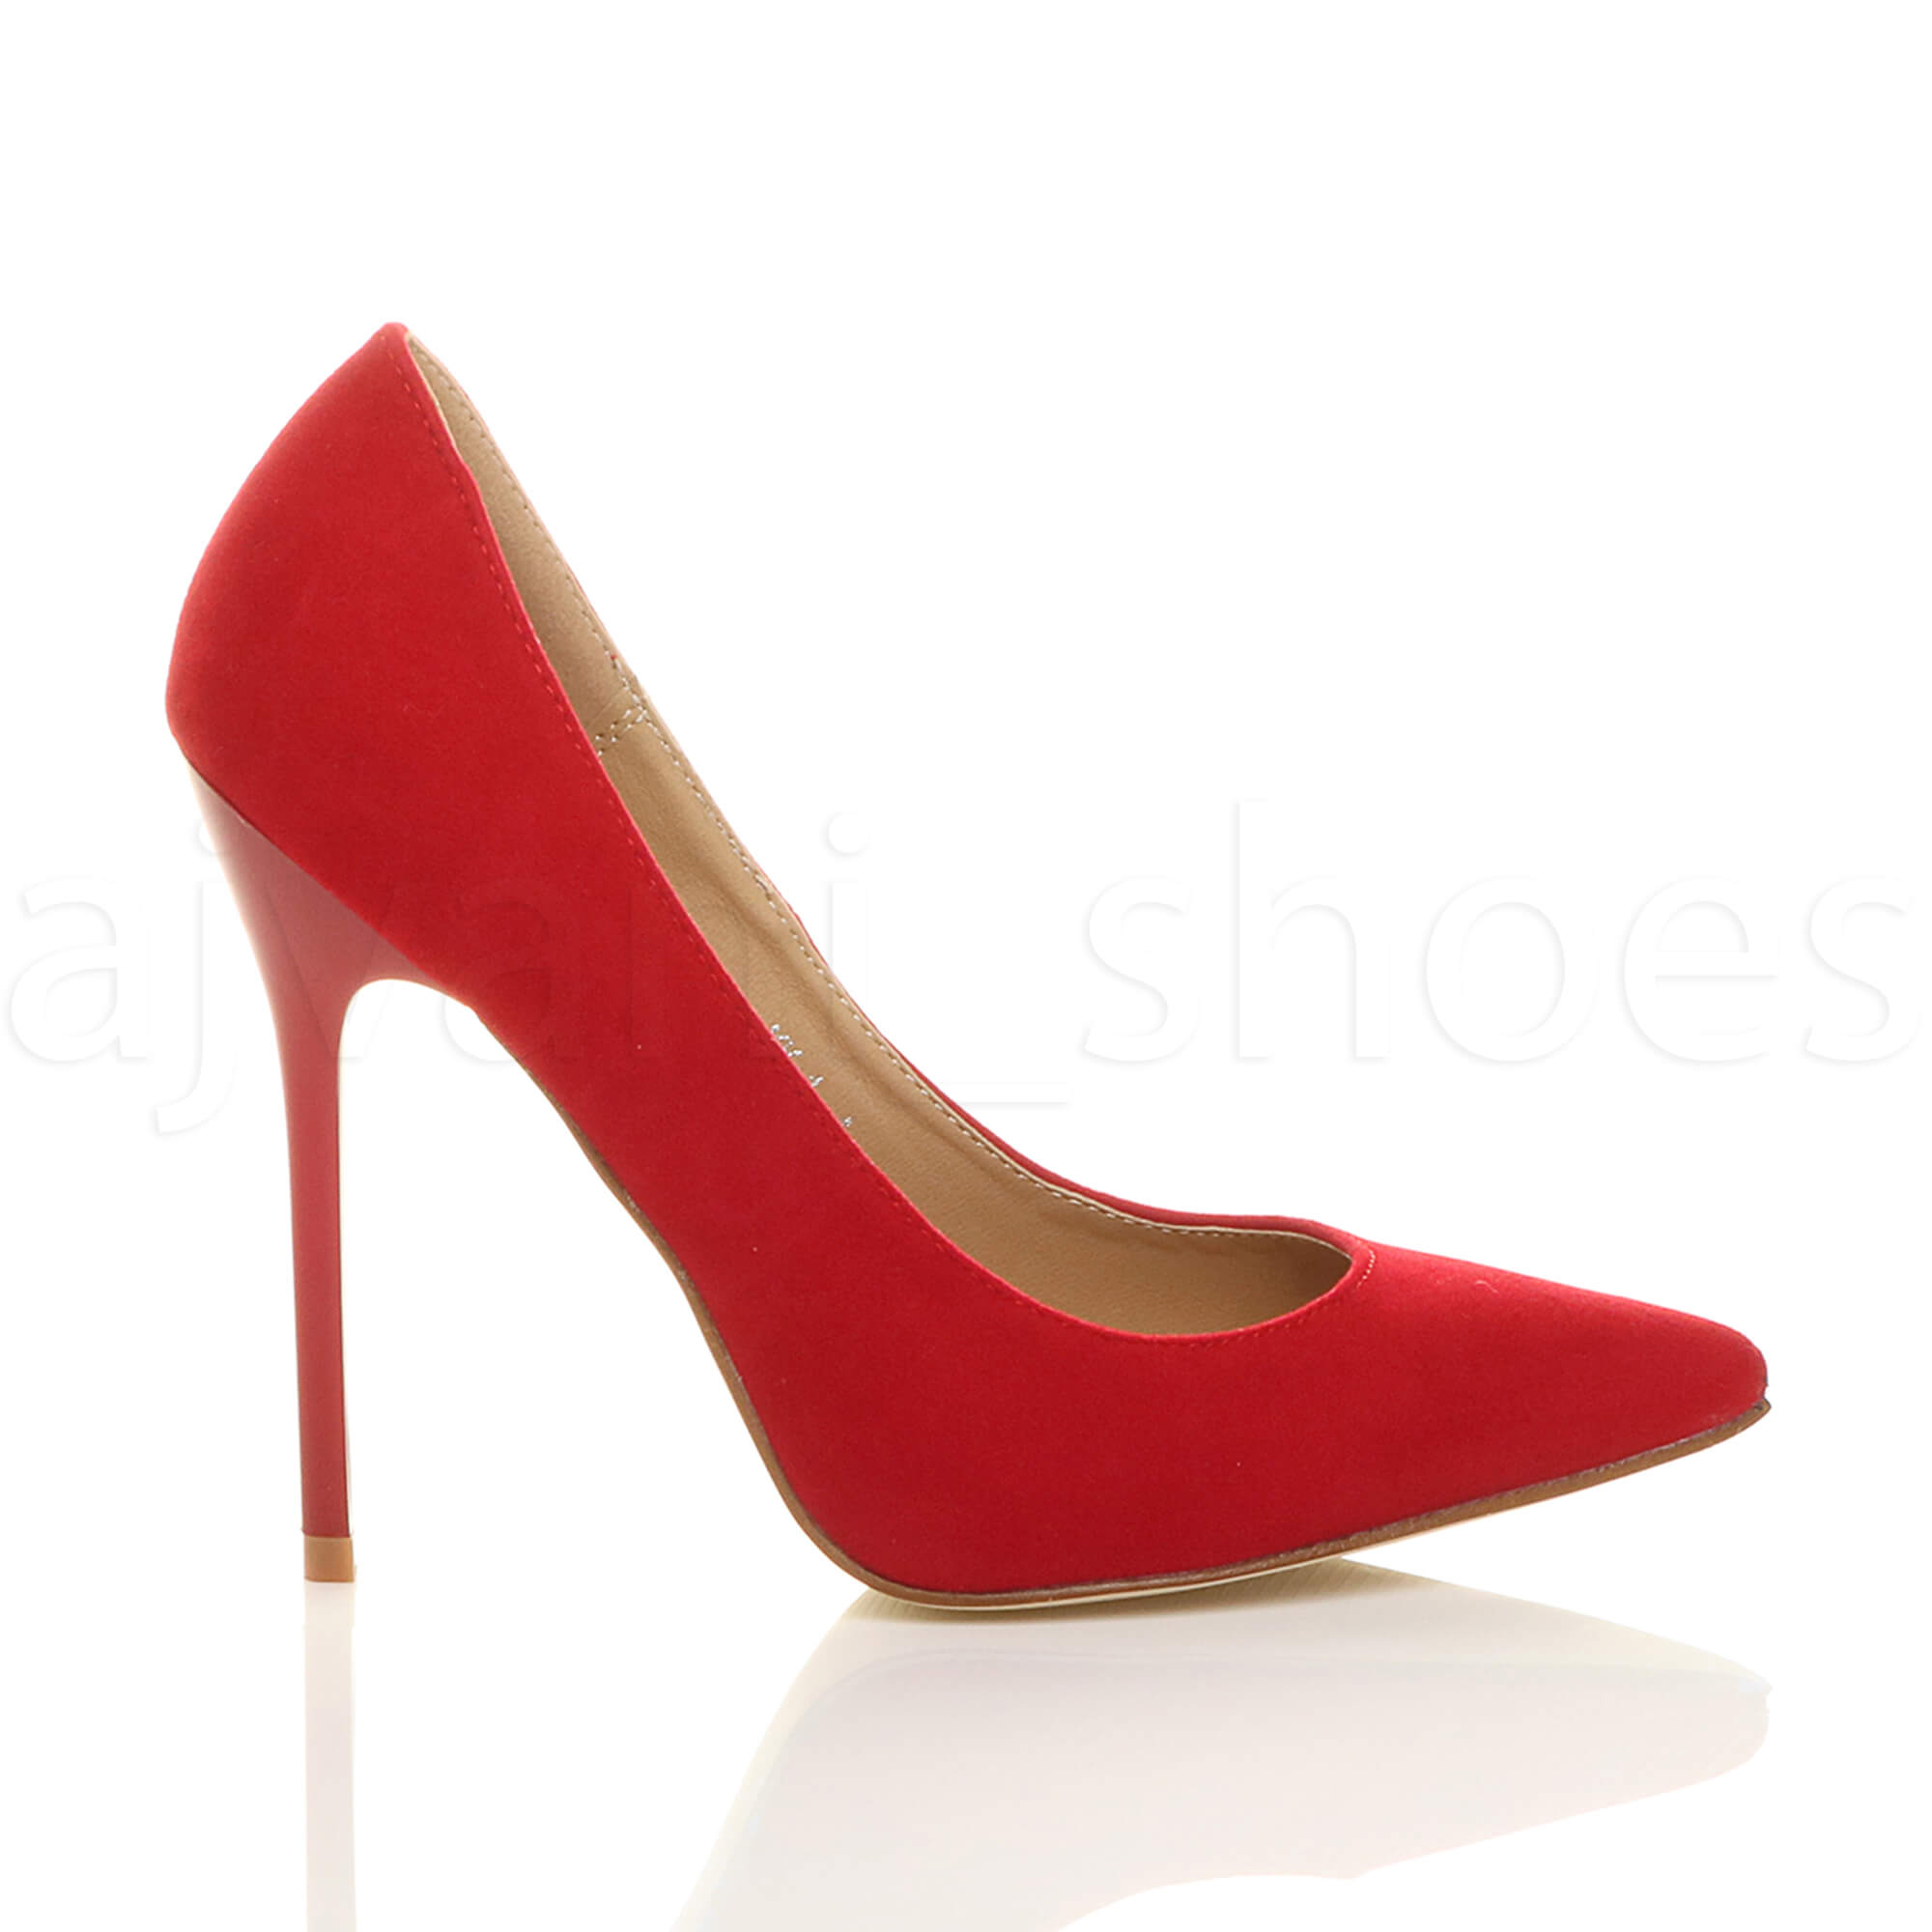 WOMENS-LADIES-HIGH-HEEL-POINTED-CONTRAST-COURT-SMART-PARTY-WORK-SHOES-PUMPS-SIZE thumbnail 169